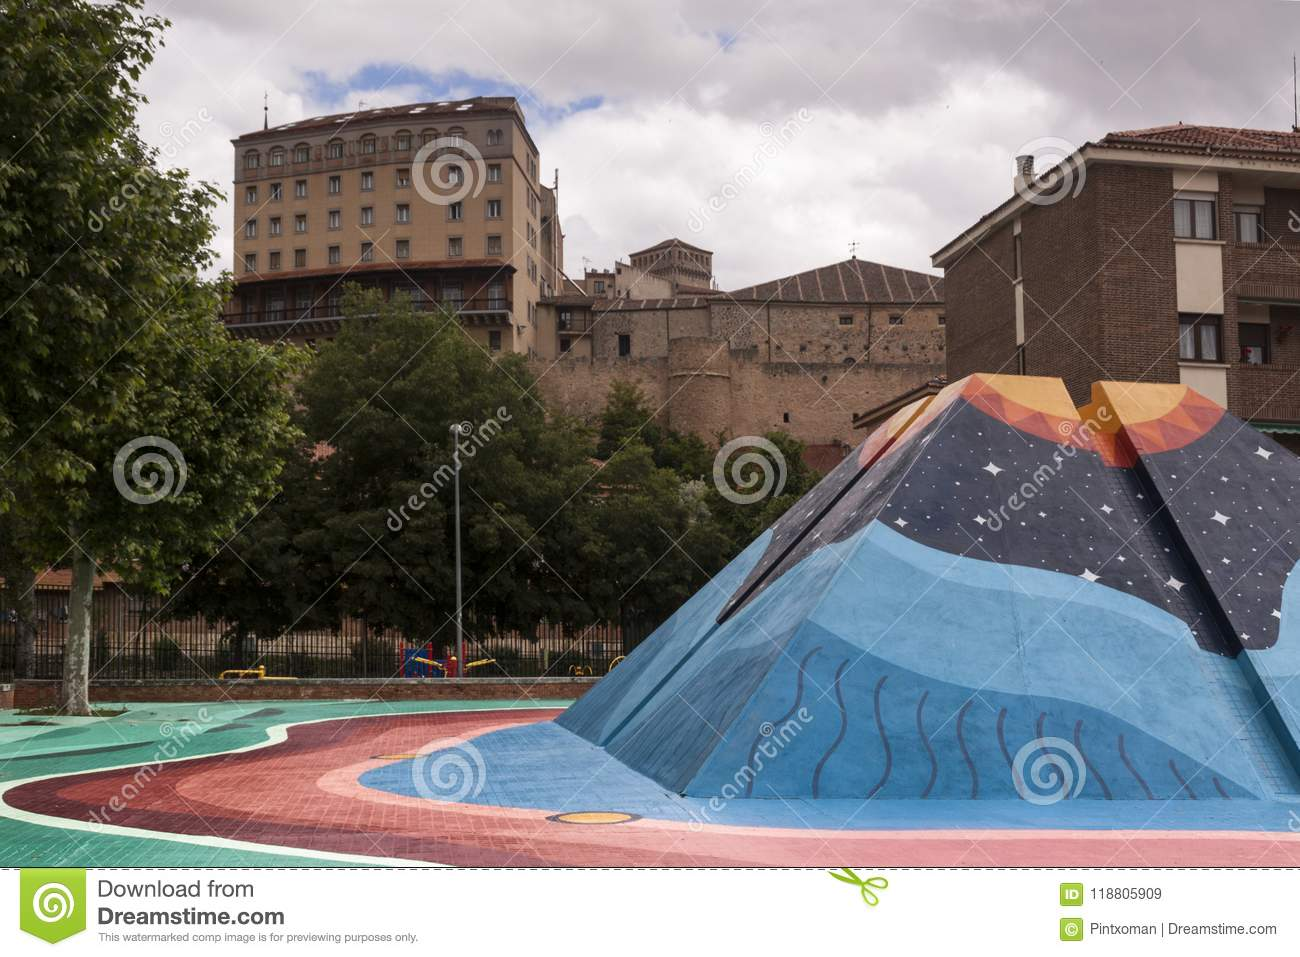 Urban art in the center of the city. Conceptual art. Lifestyle.